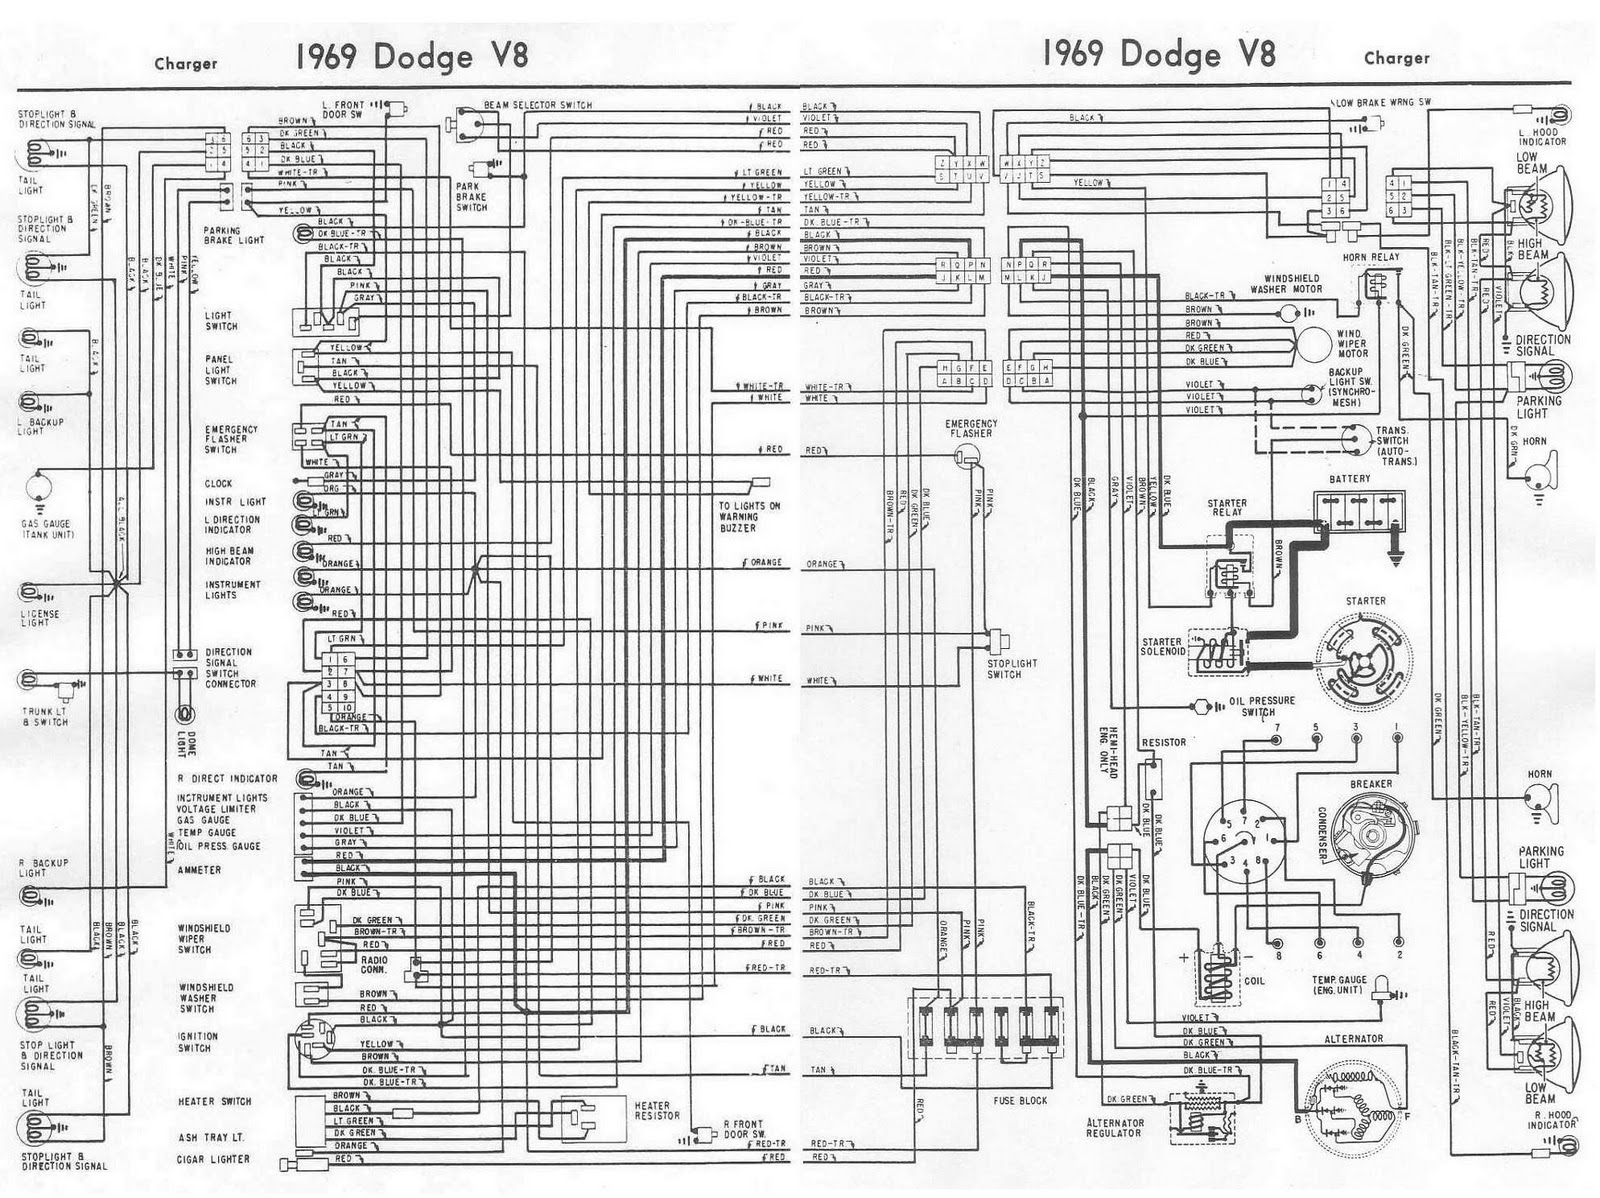 Dodge Charger 1969 V8 Complete Electrical Wiring Diagram All